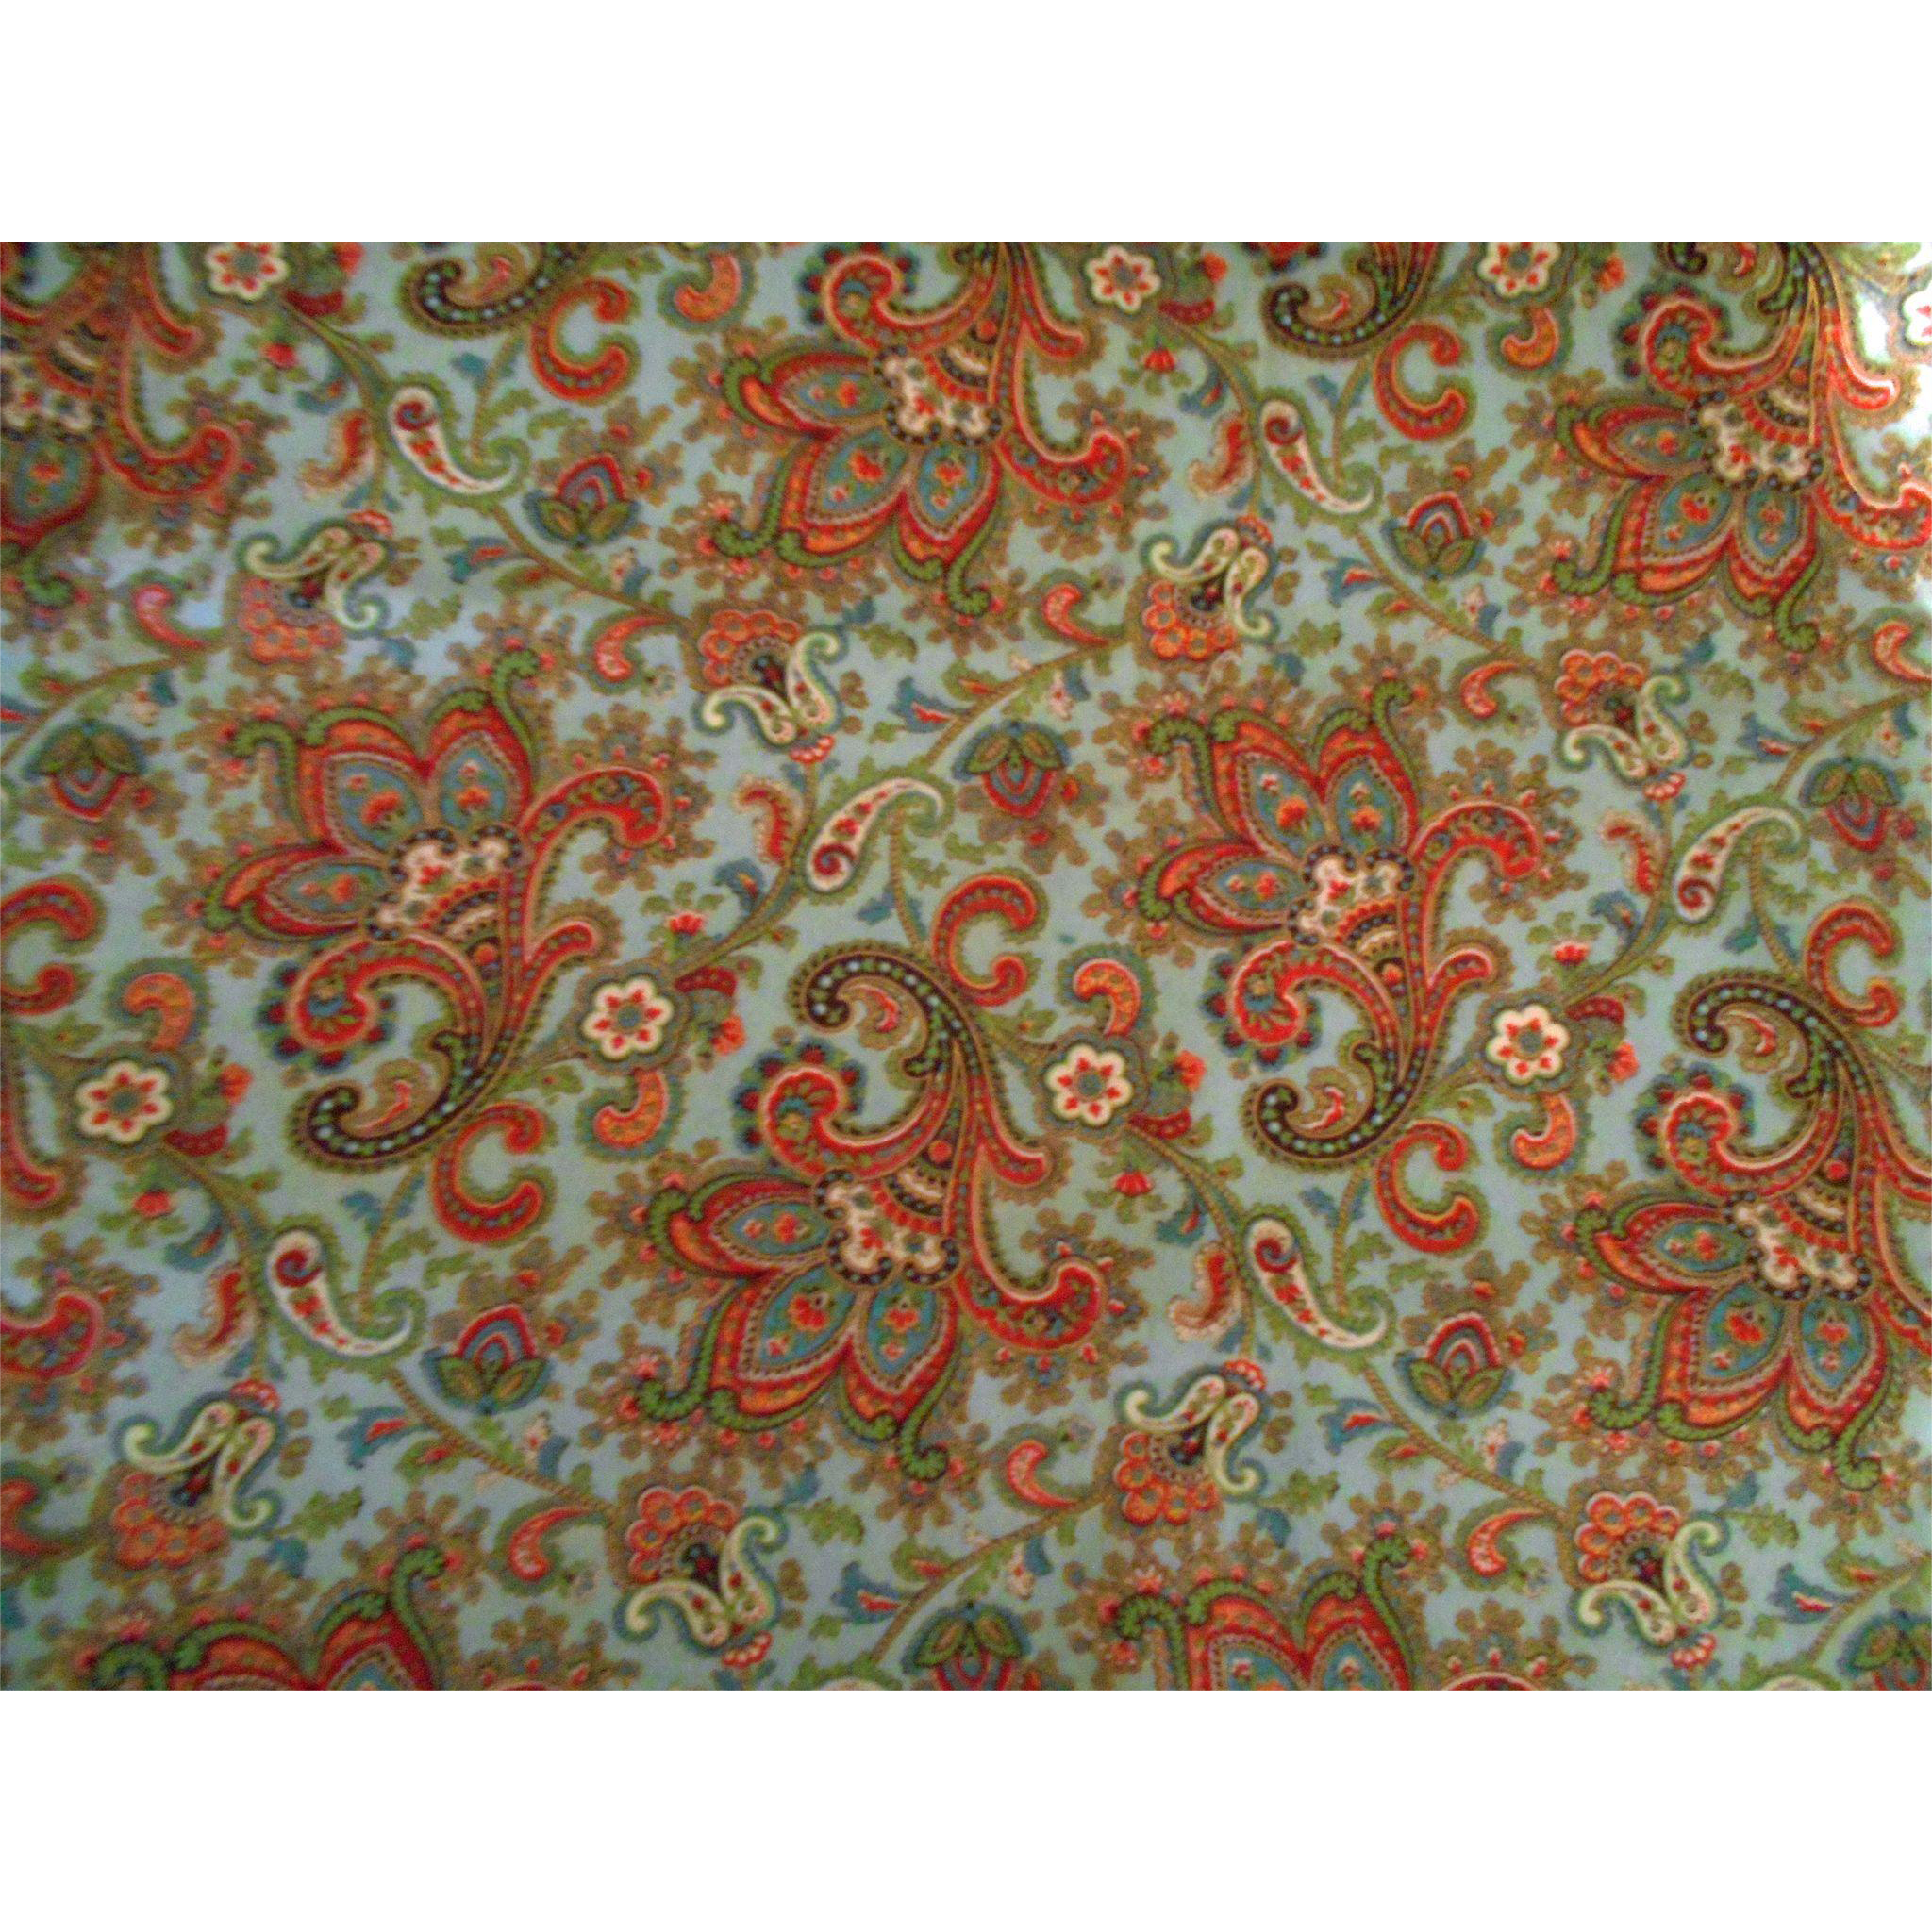 "Vintage 1920's Flannel Fabric - Stylized Floral Spray Paisley - 4 1/2 Yards 26 1/2"" Wide"